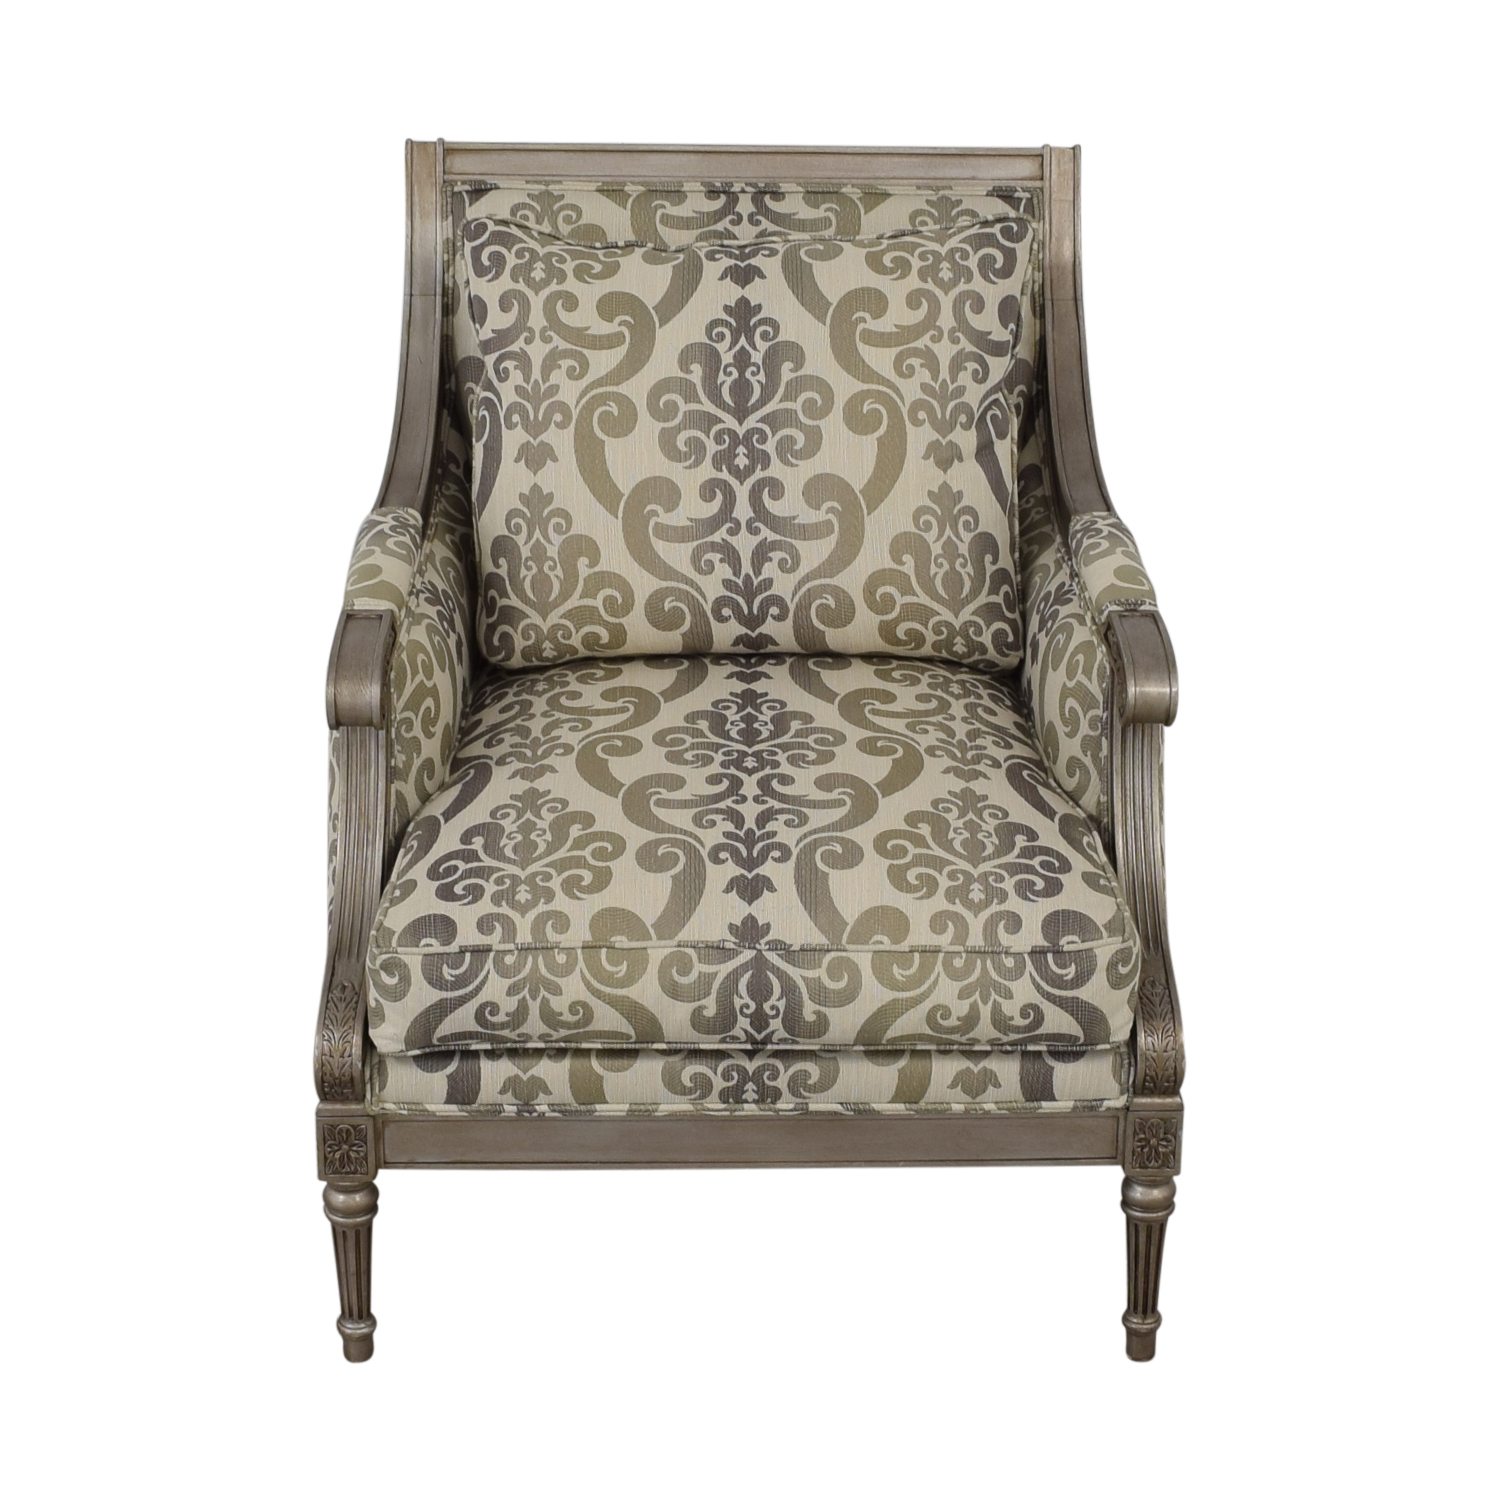 Ethan Allen Ethan Allen Fairfax Chair nj